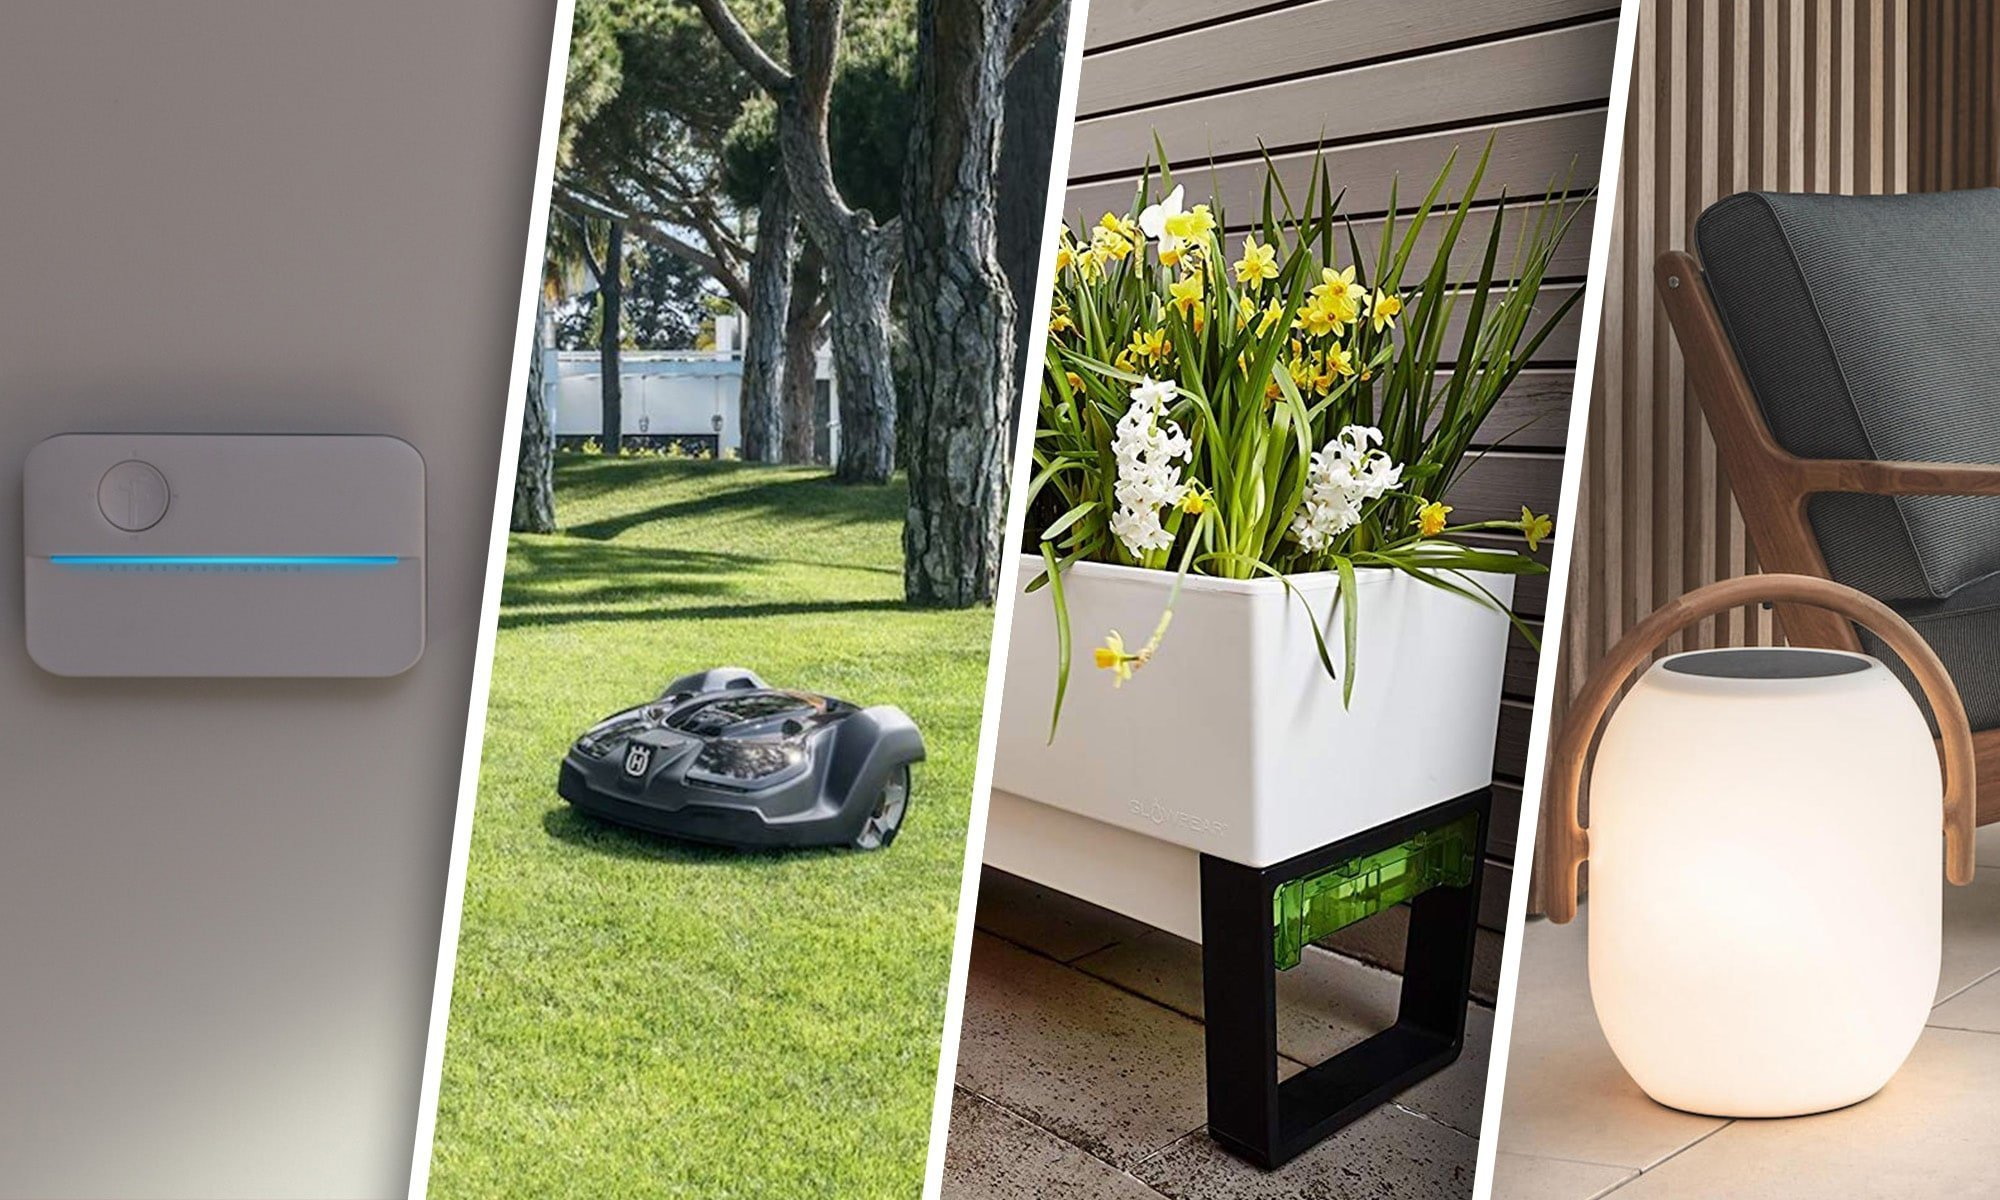 Smart garden gadgets that will make working in the backyard much more efficient